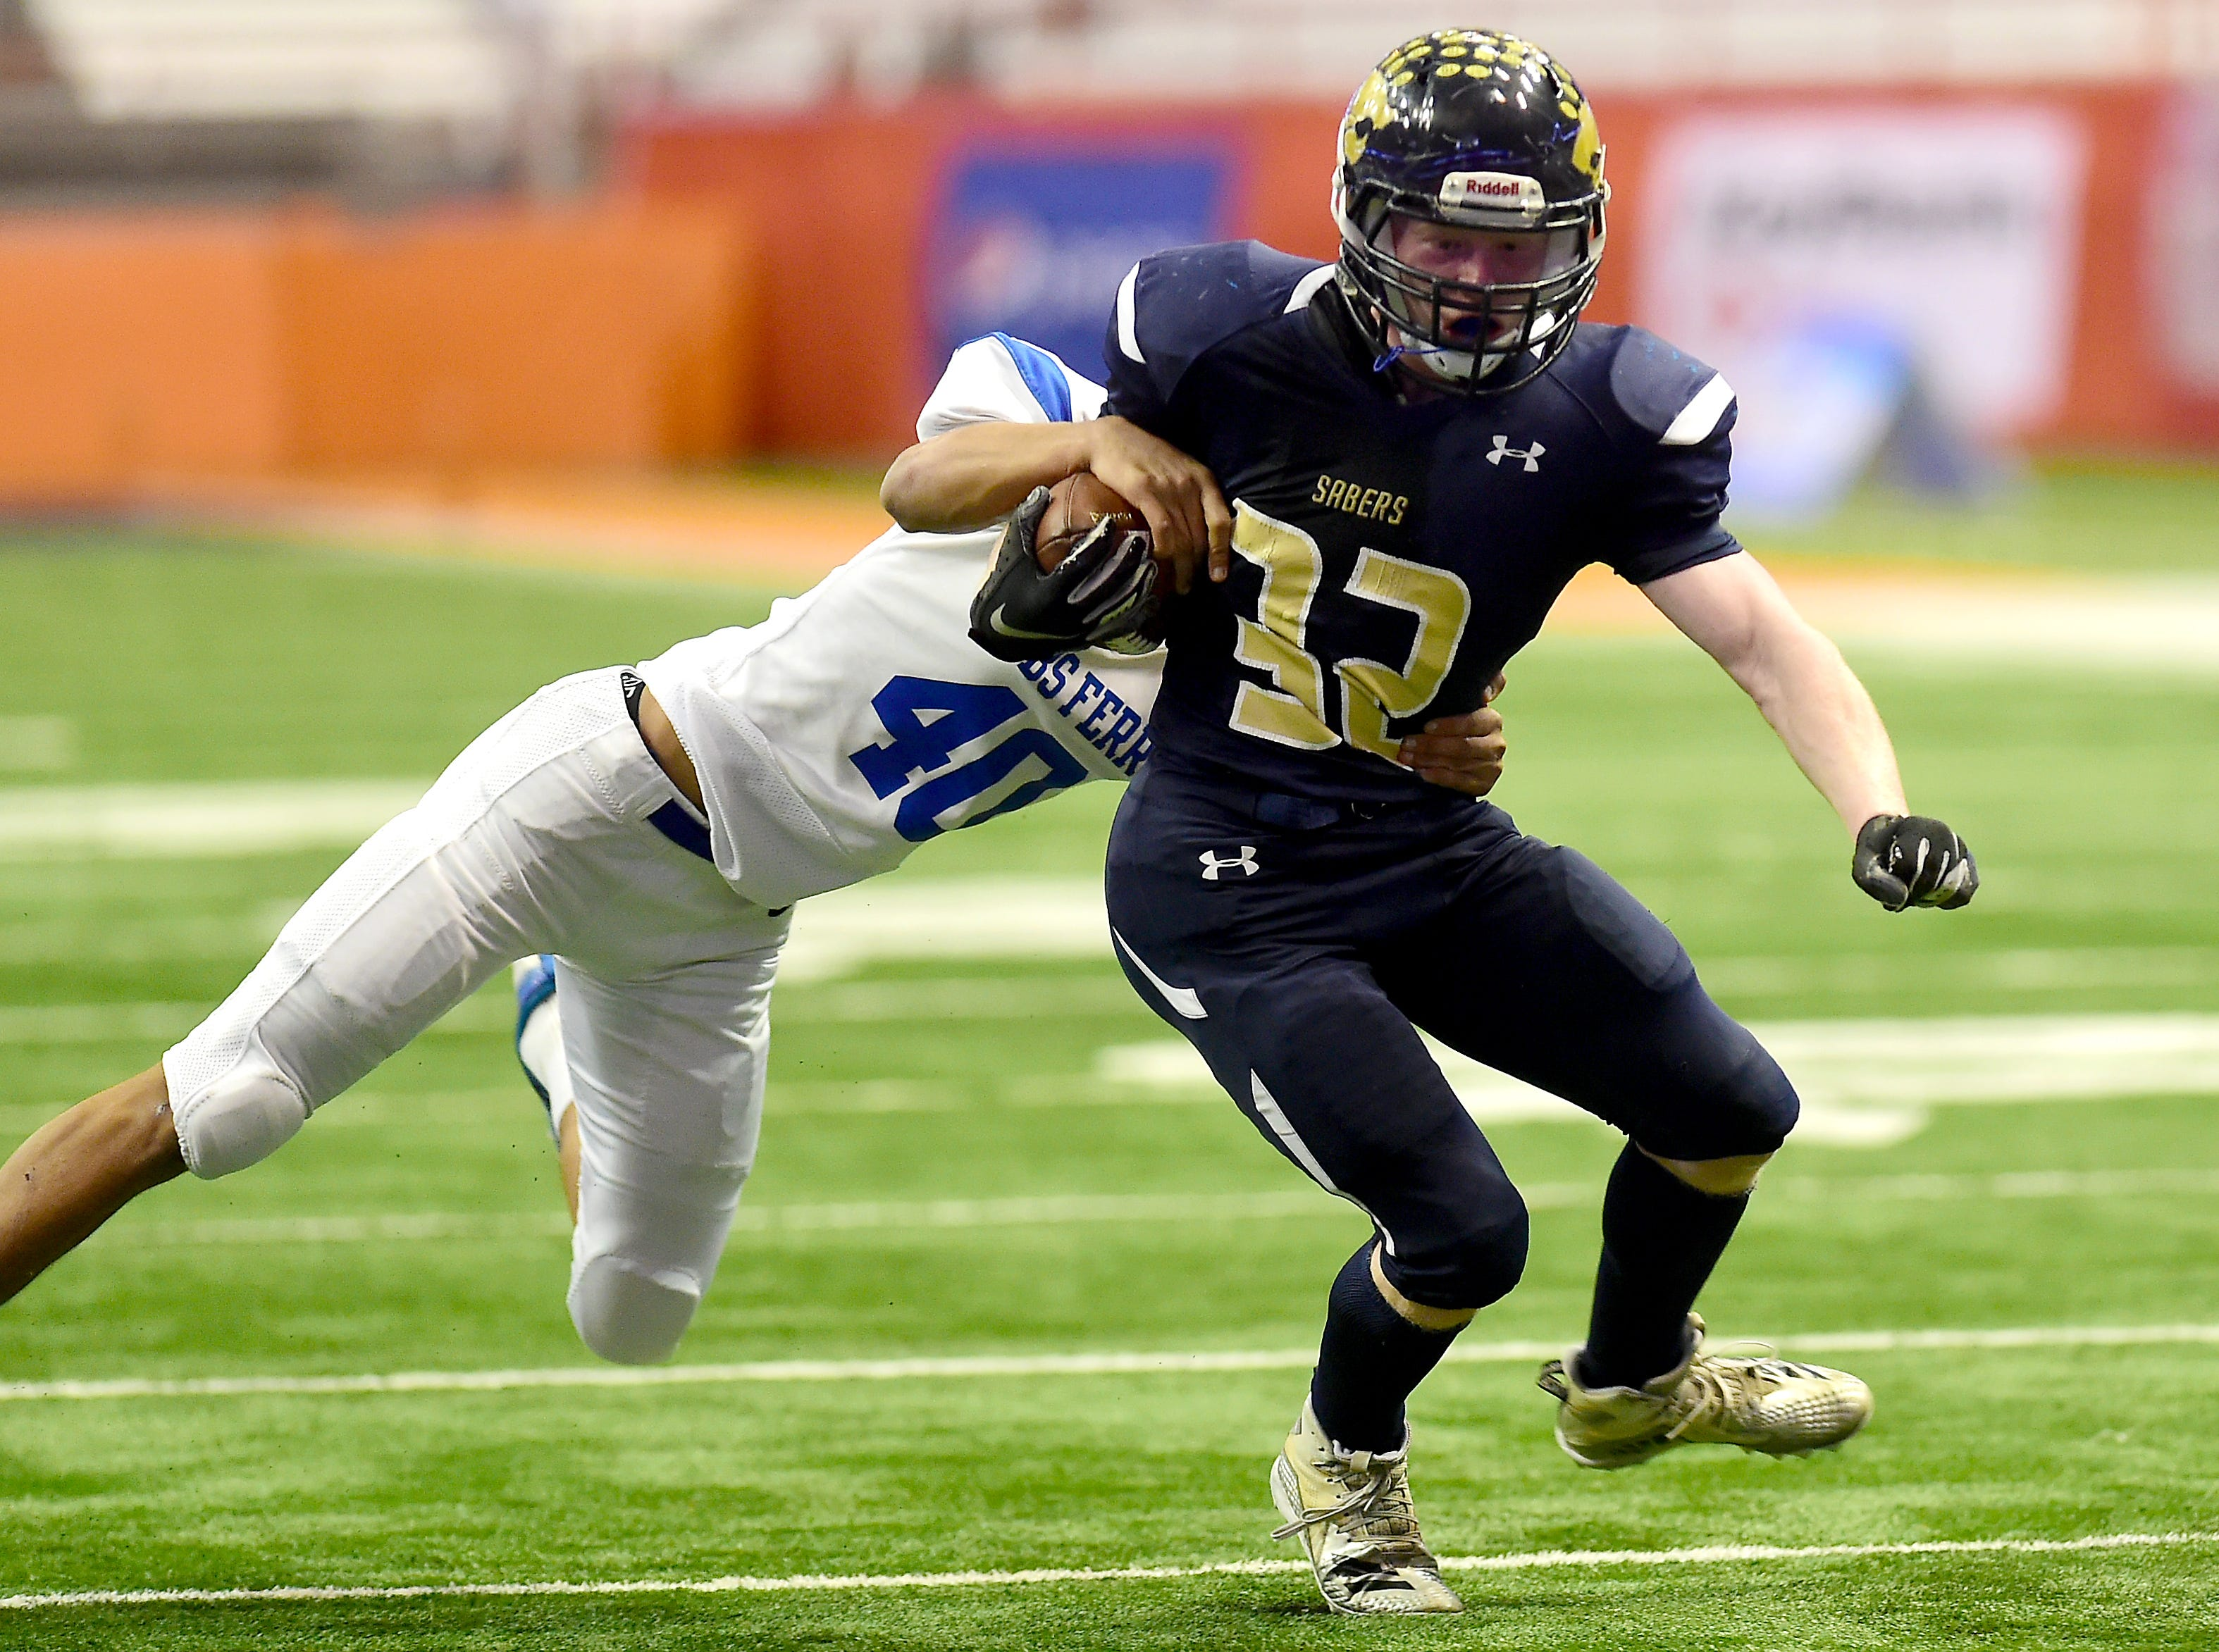 Keyle Leonard of Susquehanna Valley (32) attempts to get past Justin Morgan (40) during Susquehanna Valley vs. Dobbs Ferry, Class C NYSPHSAA state football final, Carrier Dome, Syracuse. Friday, November 23, 2018.